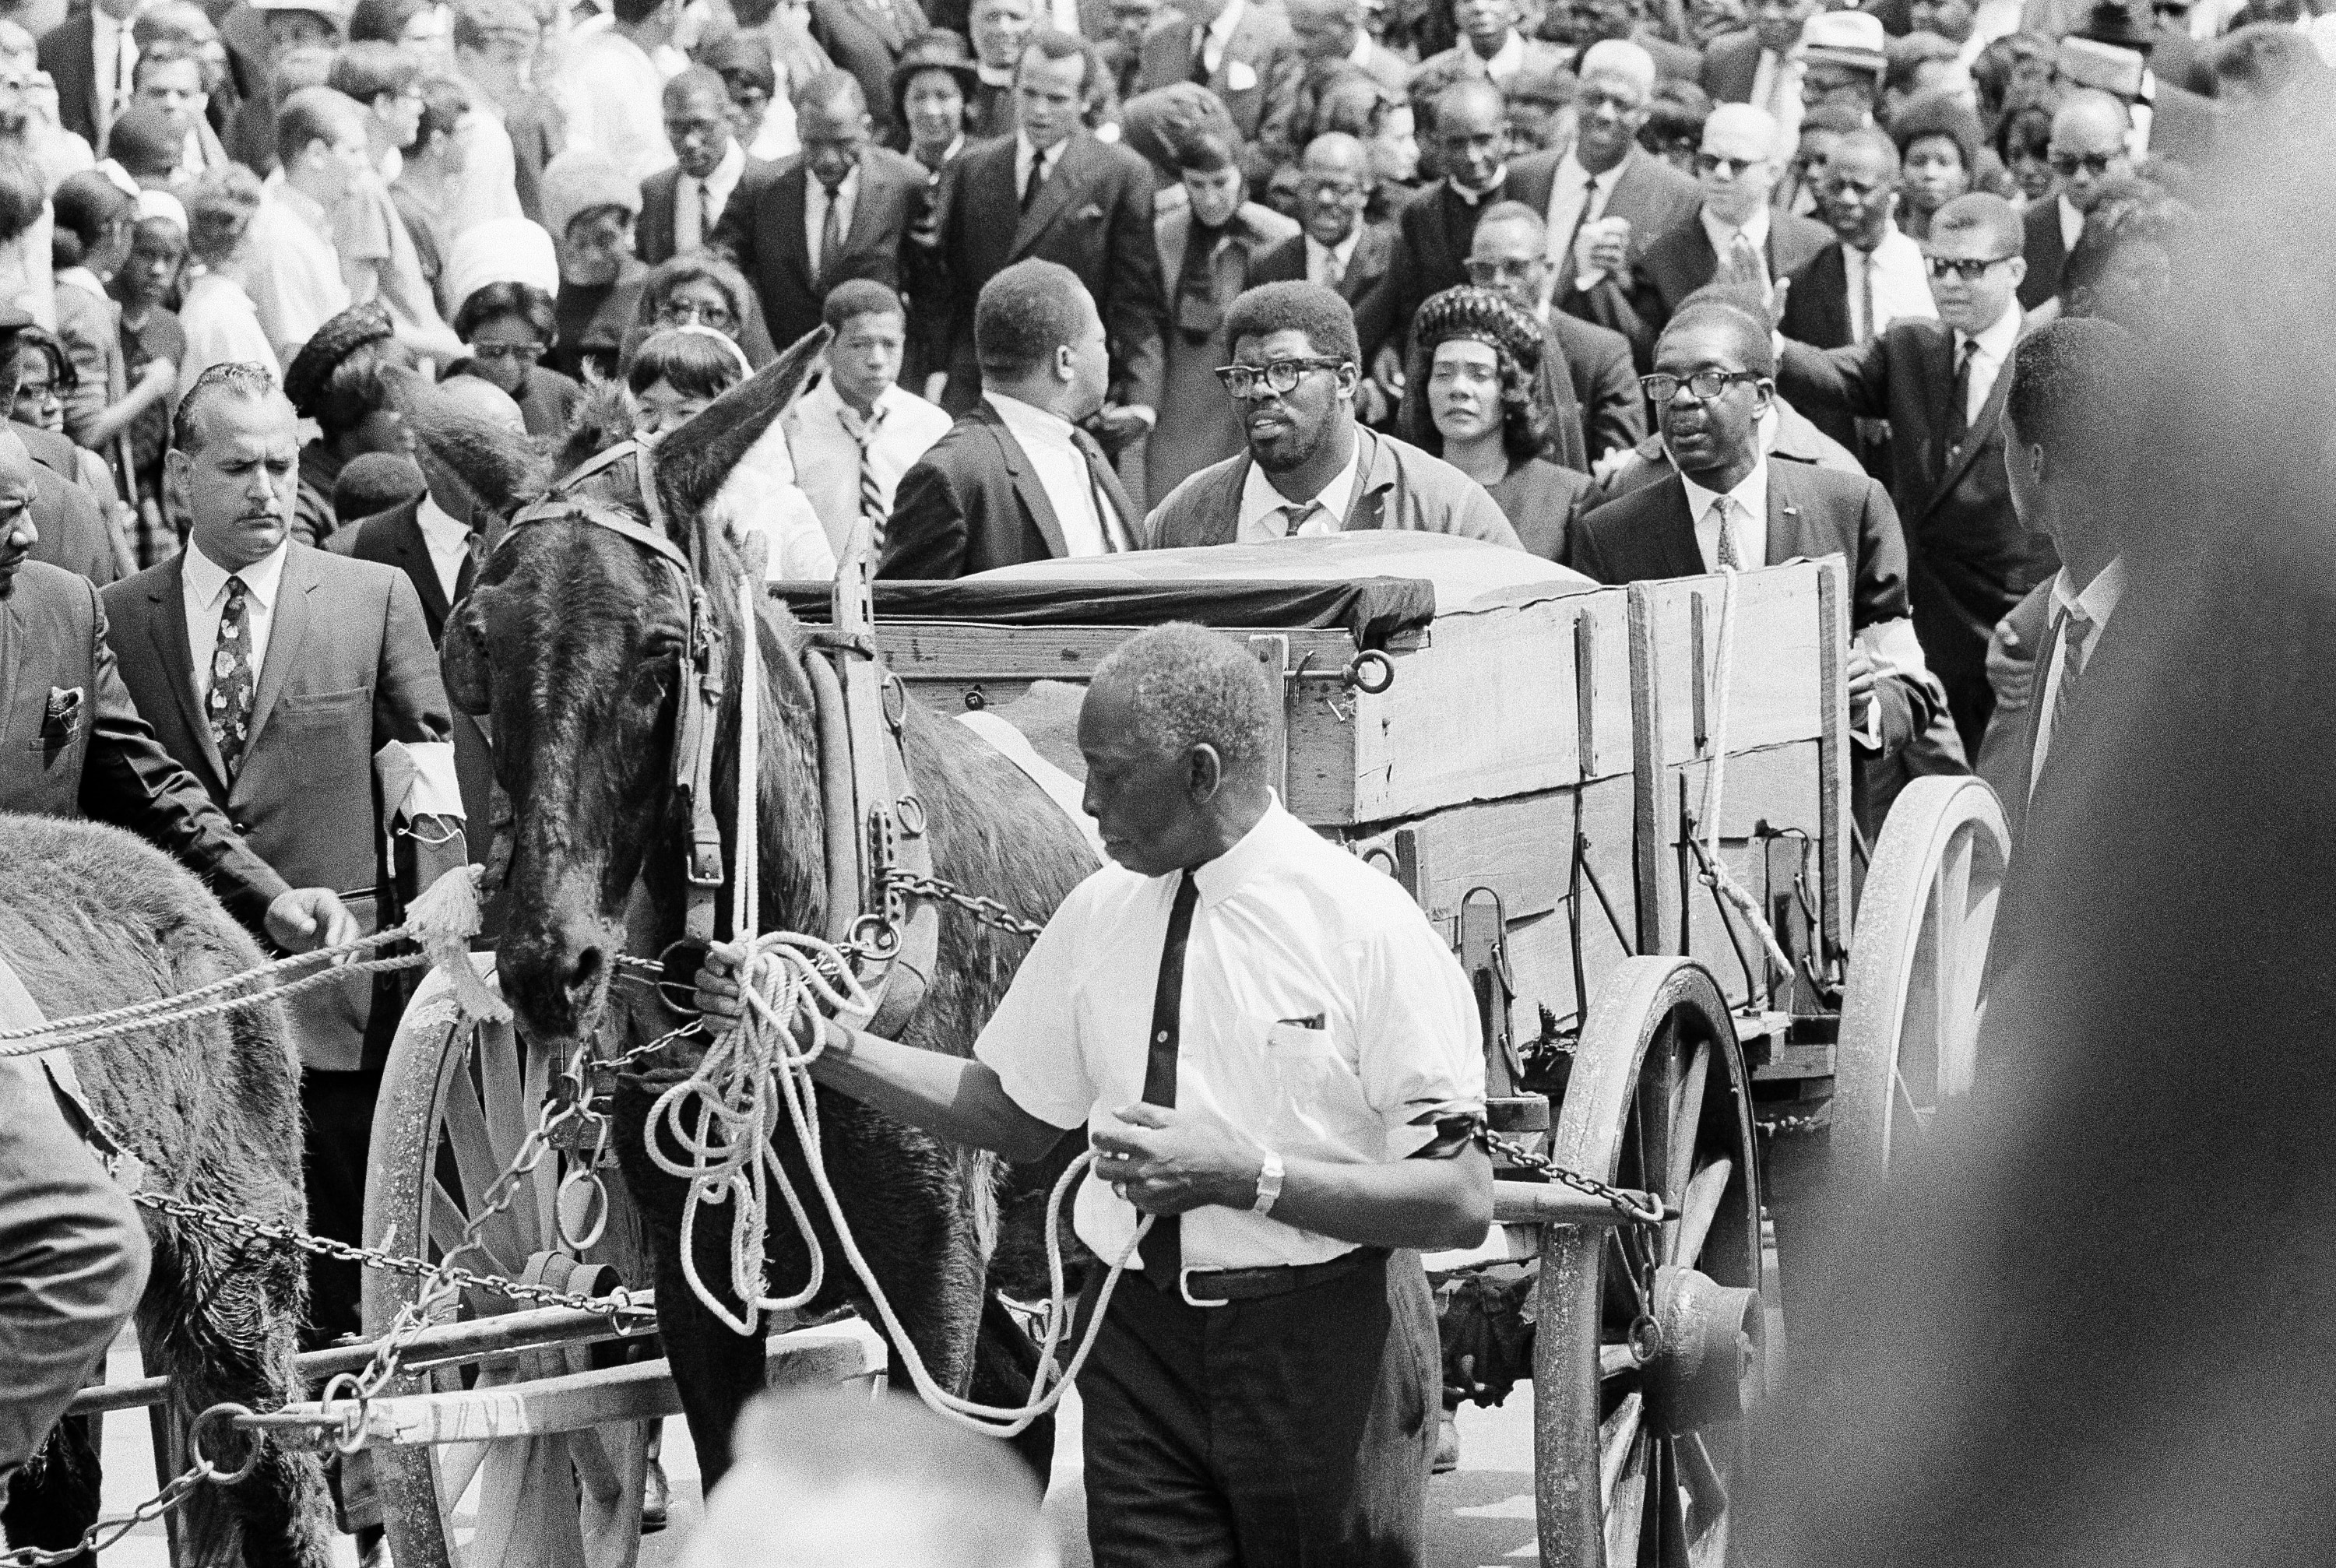 Martin Luther King's coffin in wagon amid crowd of mourners in street (© AP Images)